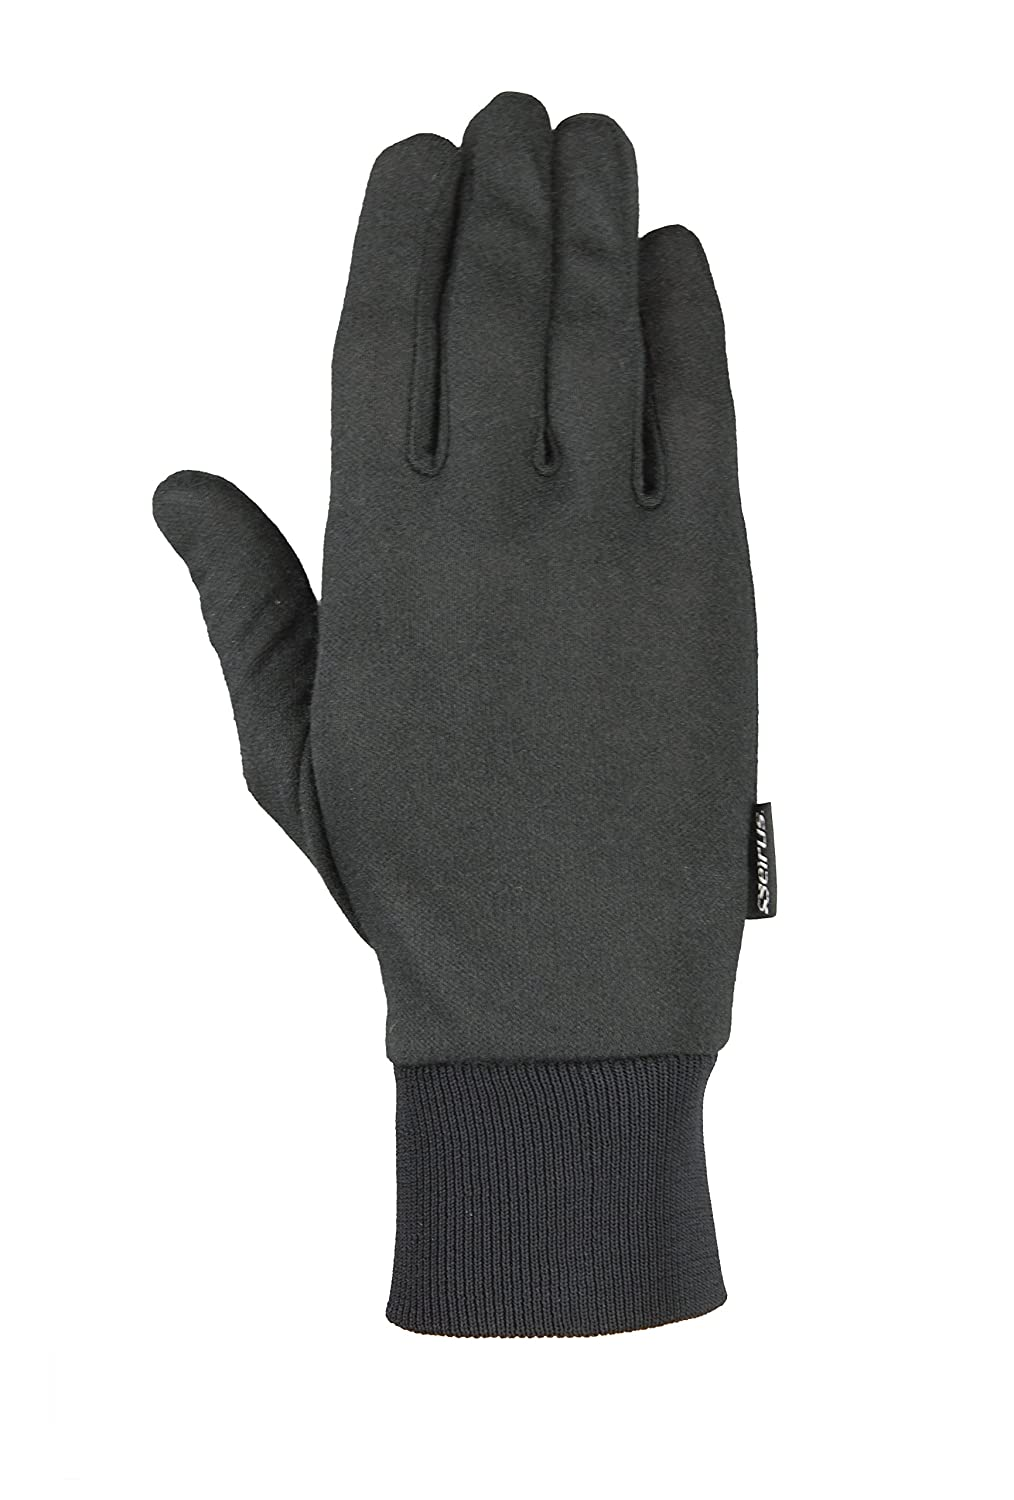 Seirus Innovation Deluxe Thermax Cold Weather Lightweight Glove 8013